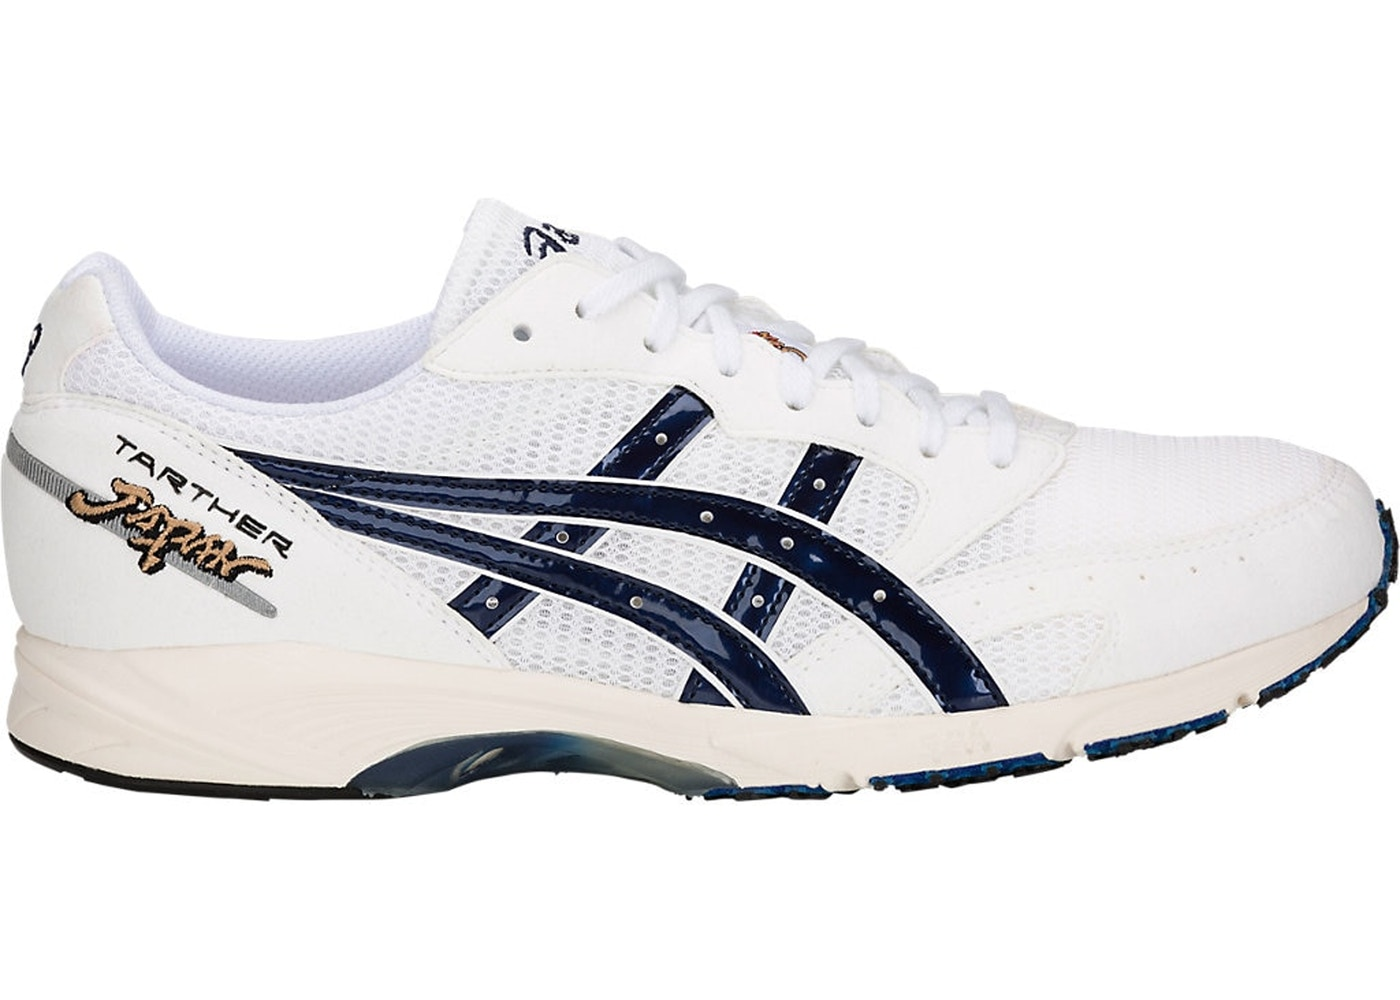 reputable site d8c7c f73b5 ASICS Size 14 Shoes - Release Date